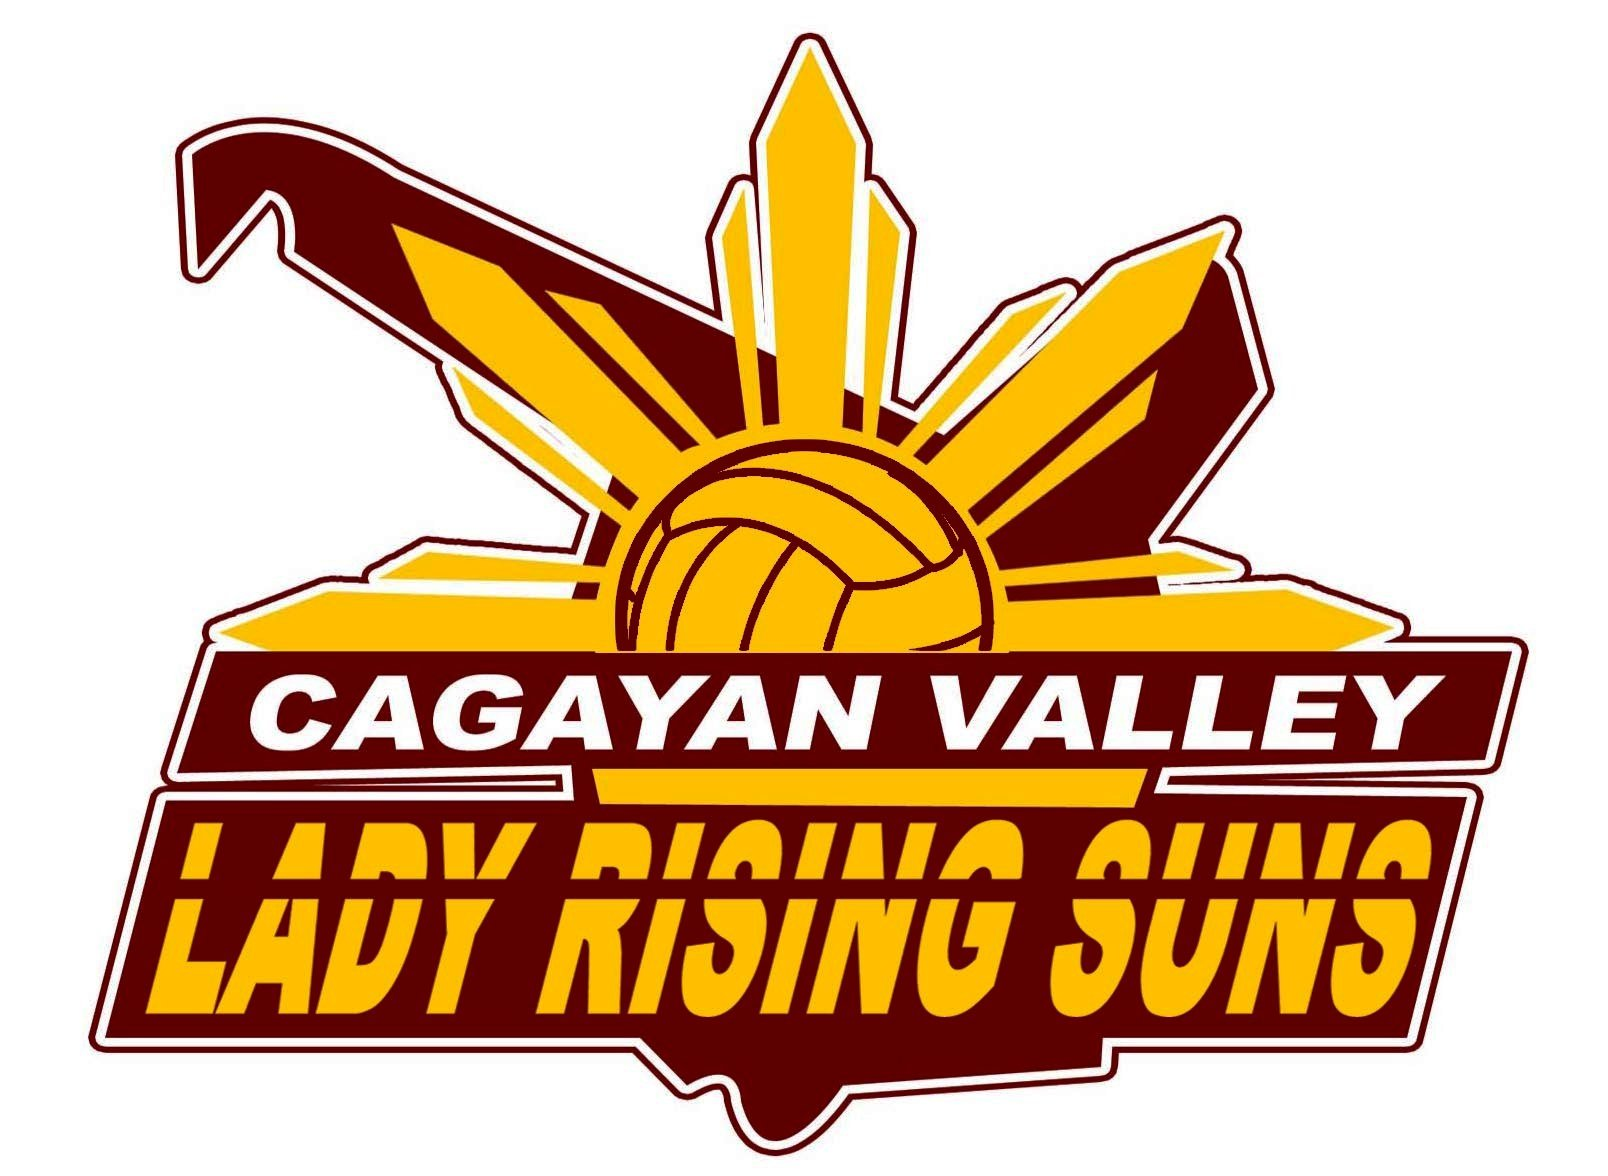 Cagayan Valley Lady Rising Suns | Kalongkong Hiker